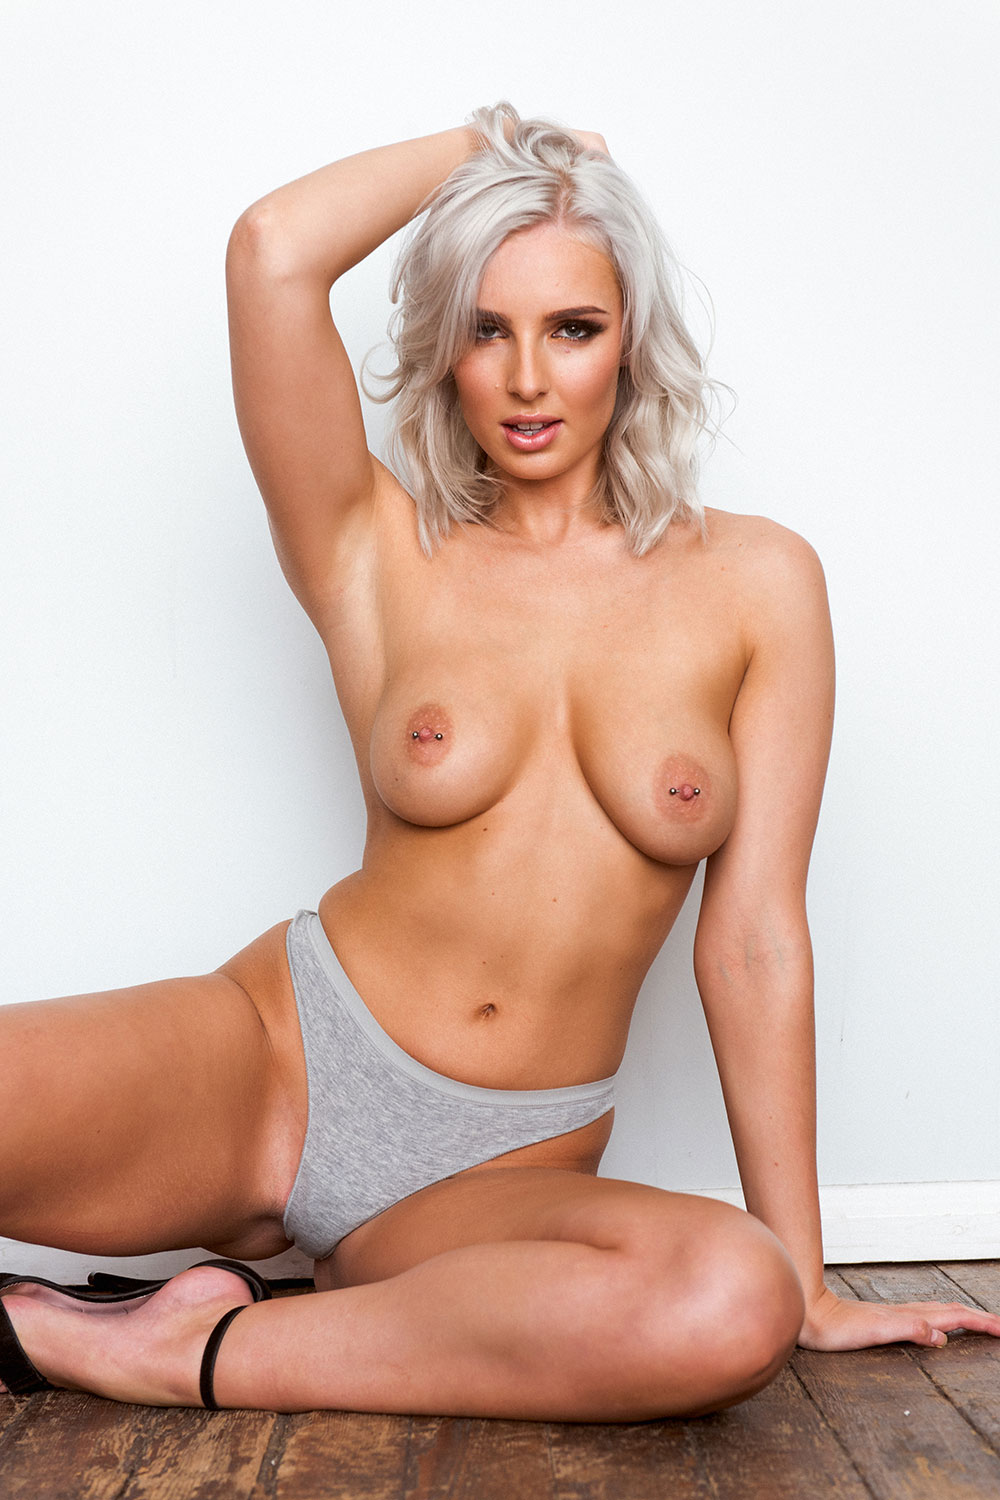 Topless Photos of Lissy Cunningham